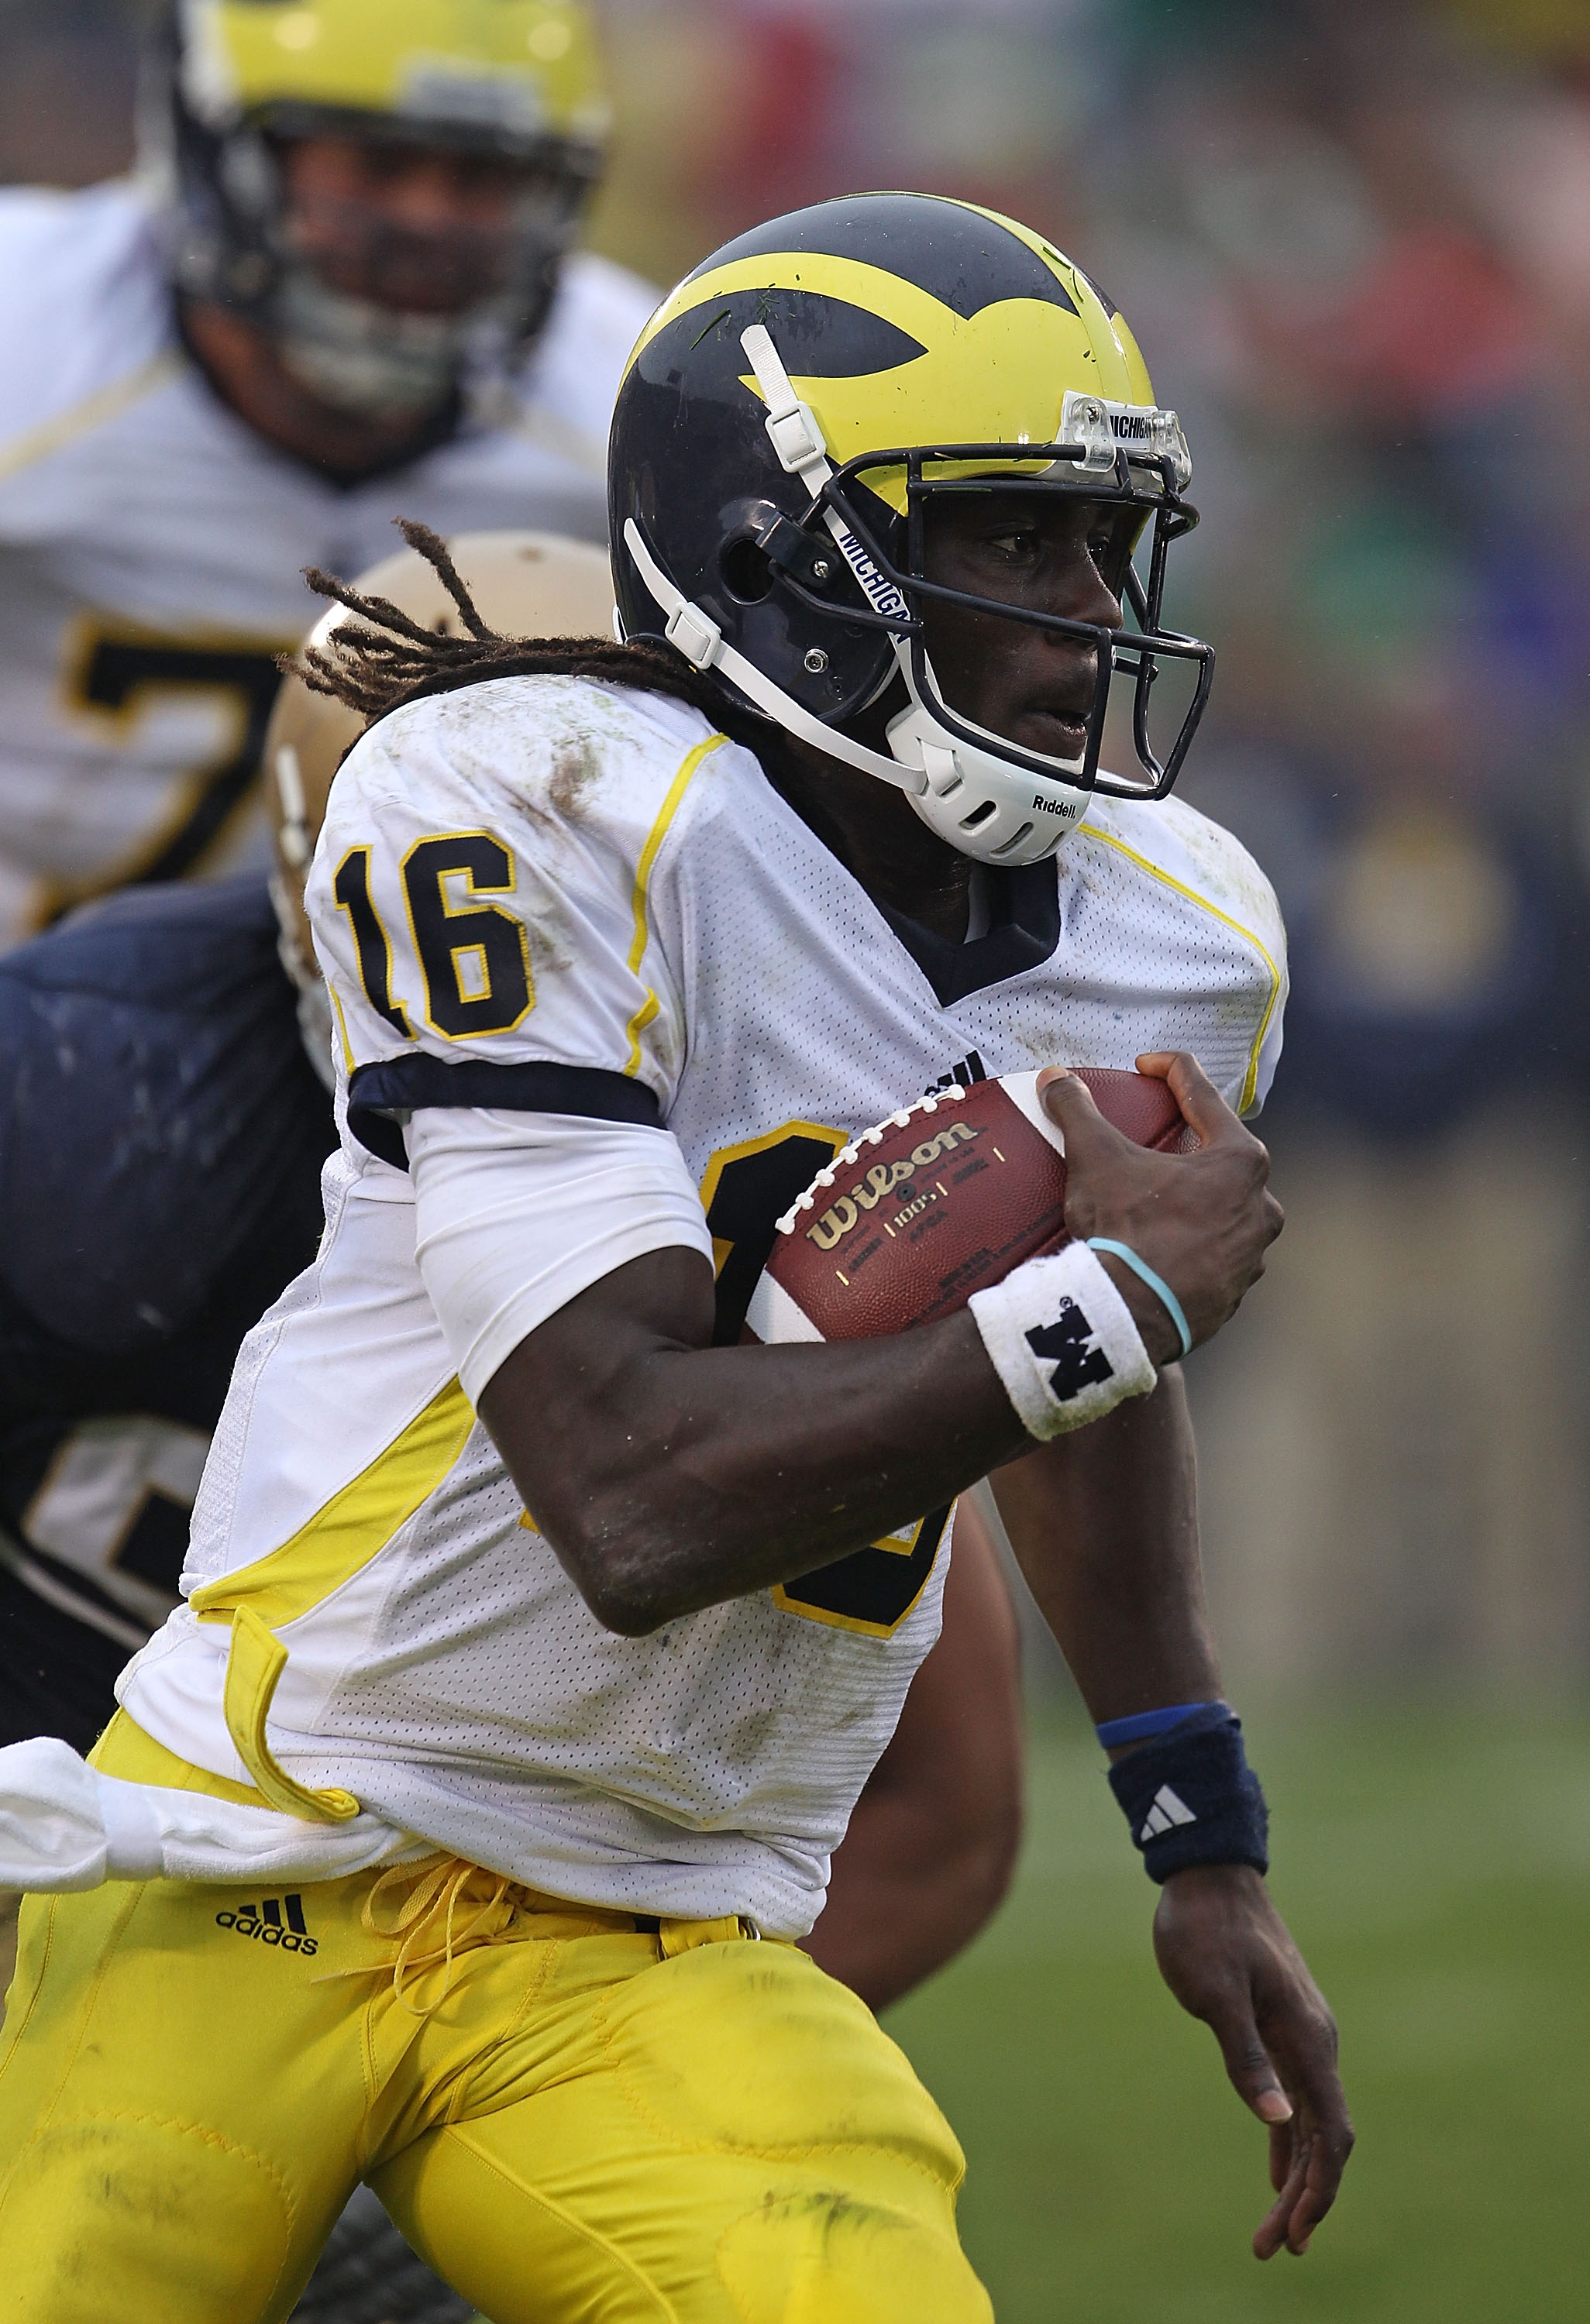 SOUTH BEND, IN - SEPTEMBER 11: Denard Robinson #16 of the Michigan Wolverines takes off on an 87 yard touchdown run against the Notre Dame Fighting Irish at Notre Dame Stadium on September 11, 2010 in South Bend, Indiana. (Photo by Jonathan Daniel/Getty I